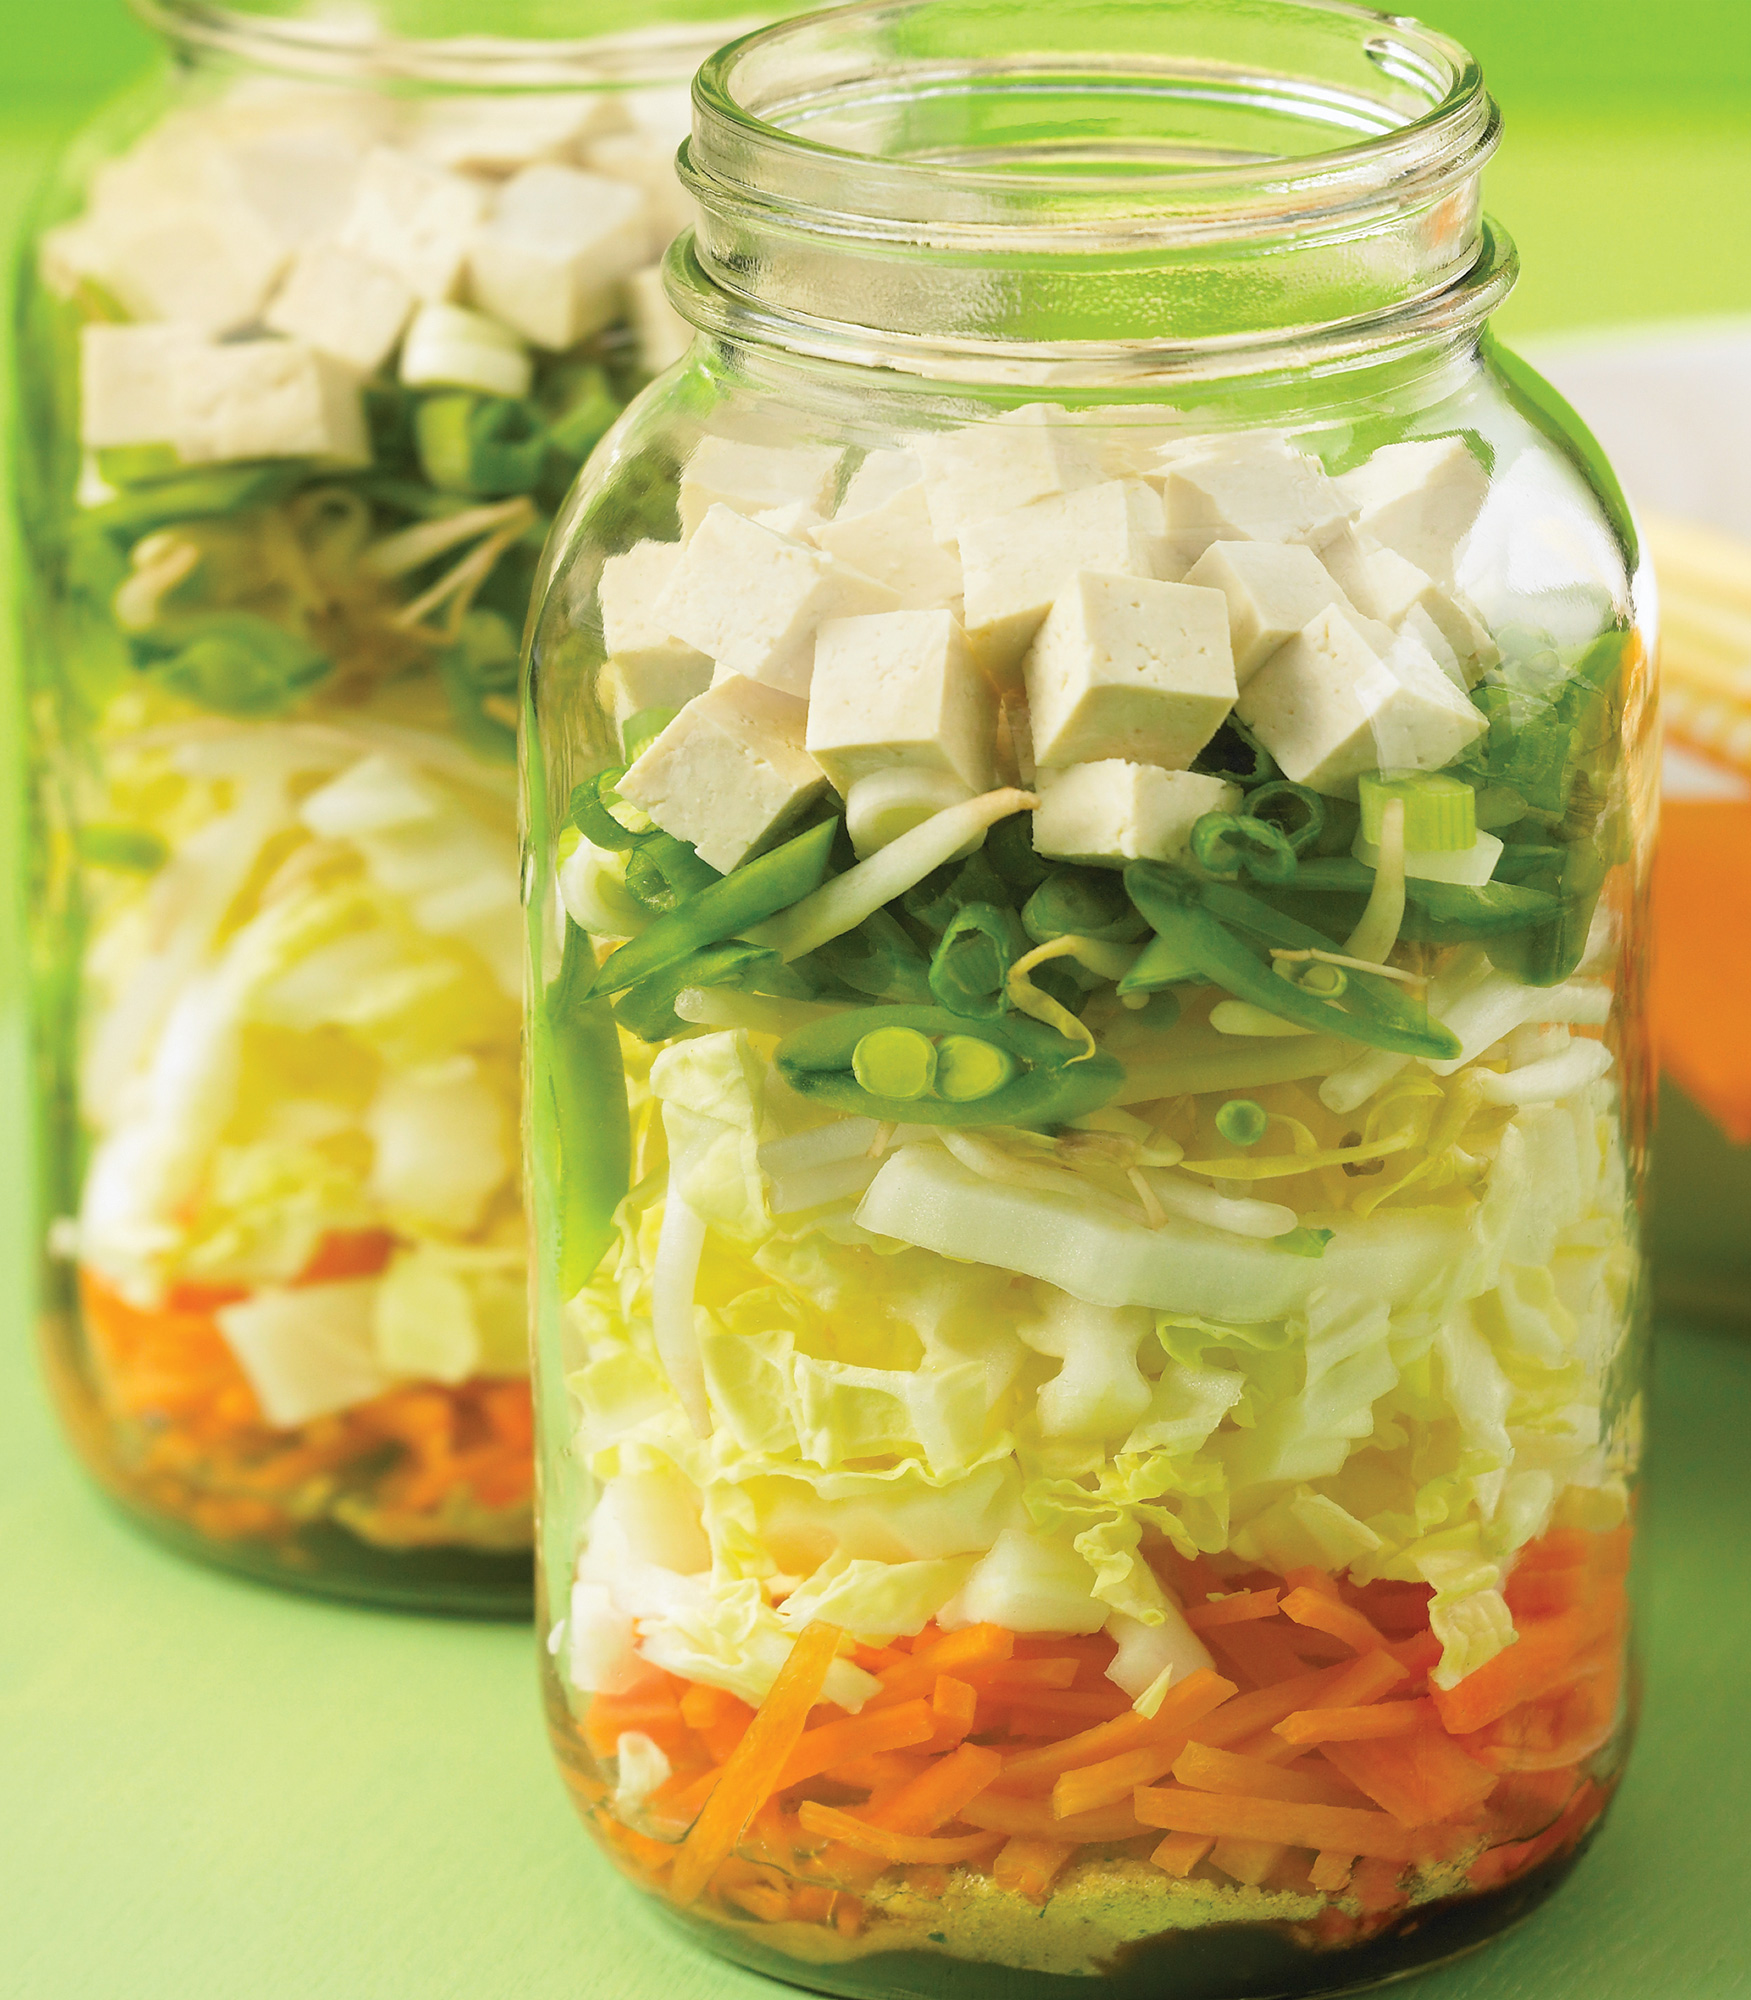 Deliciously fresh vegetable tofu soup is quickly cooked in a mason jar.